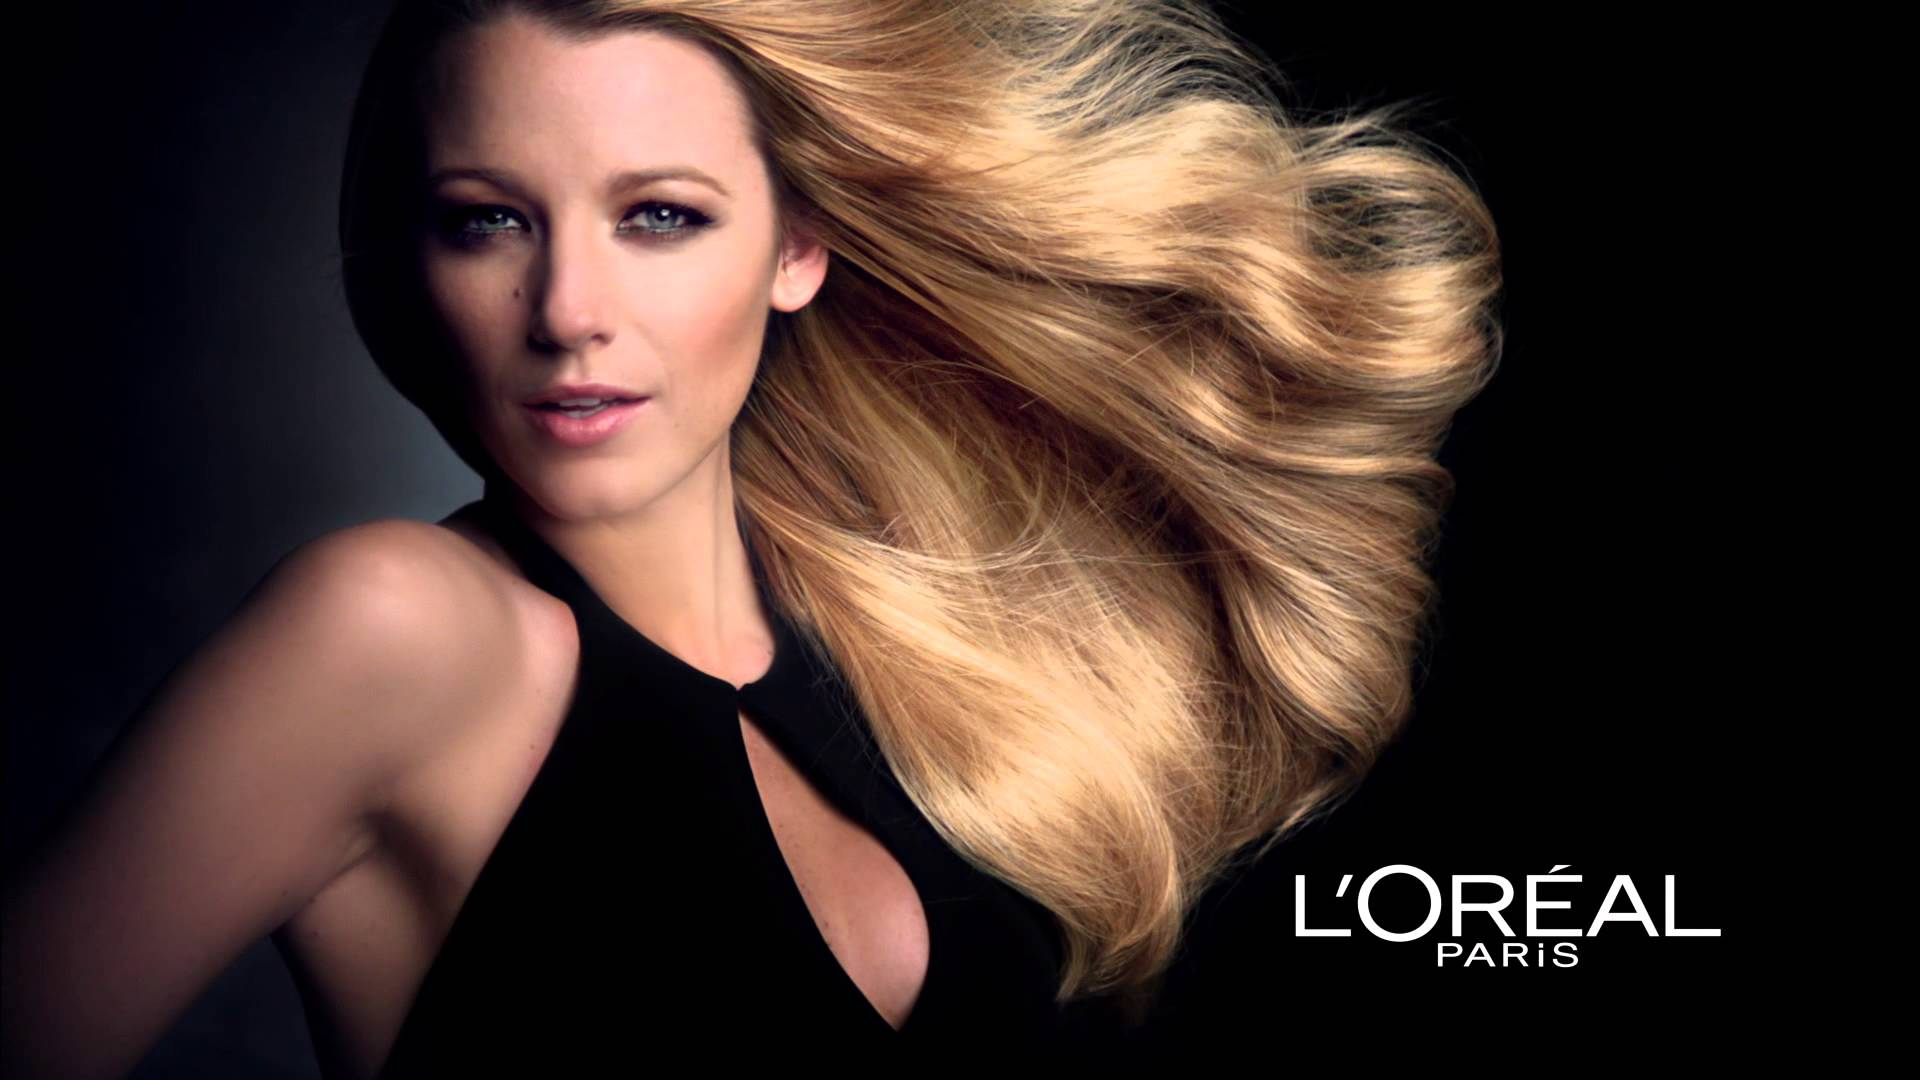 Blake lively fashion spot 71